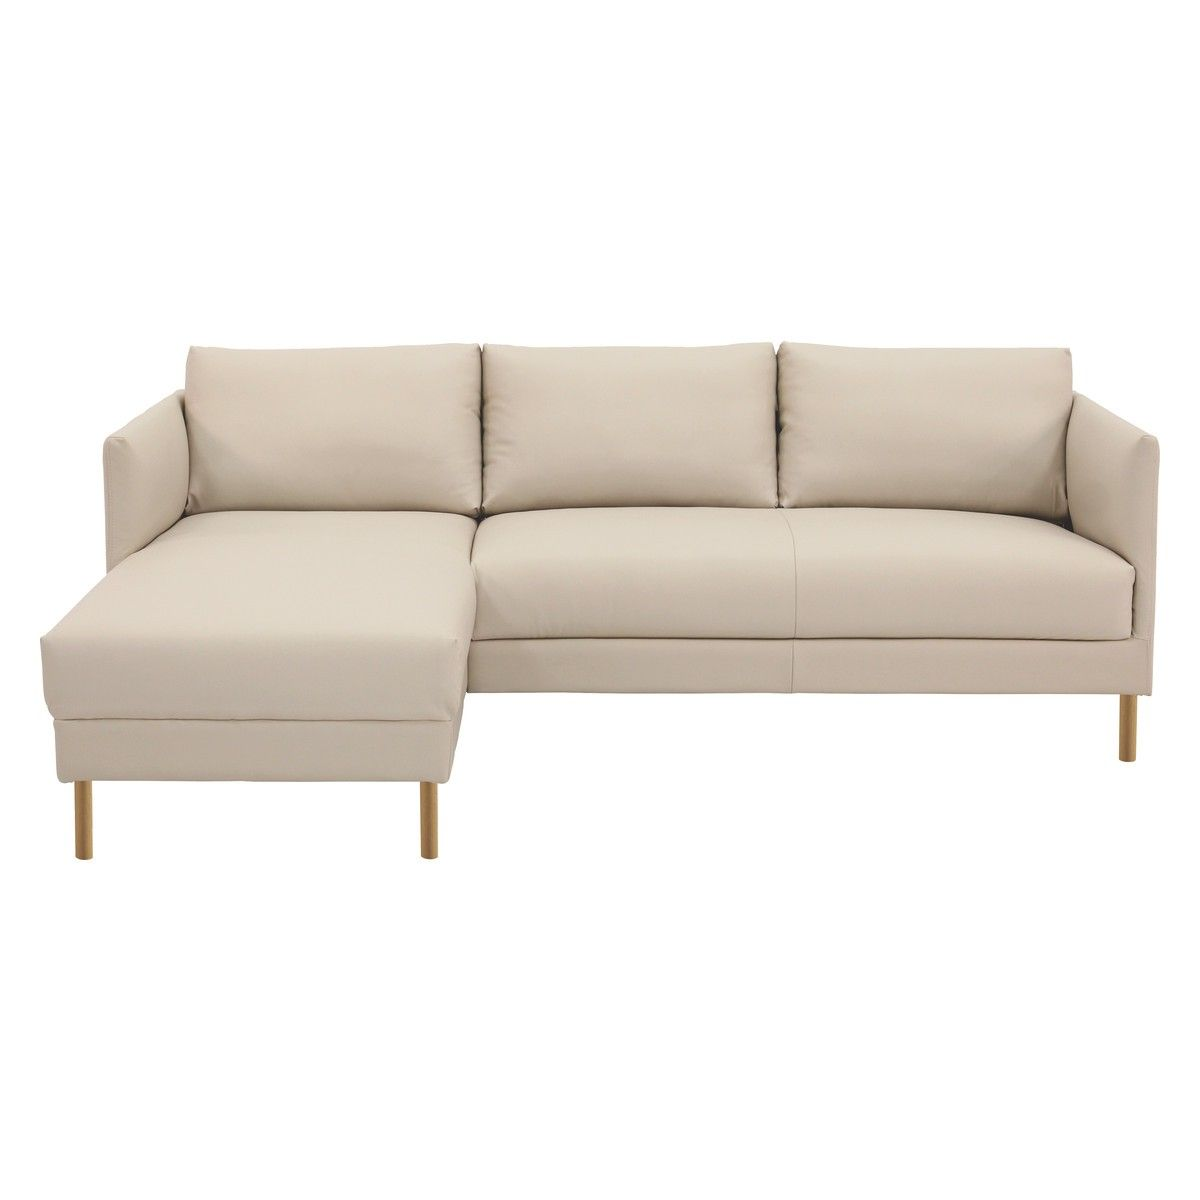 Attractive HYDE Cream Leather Left Arm Chaise Sofa, Wooden Legs